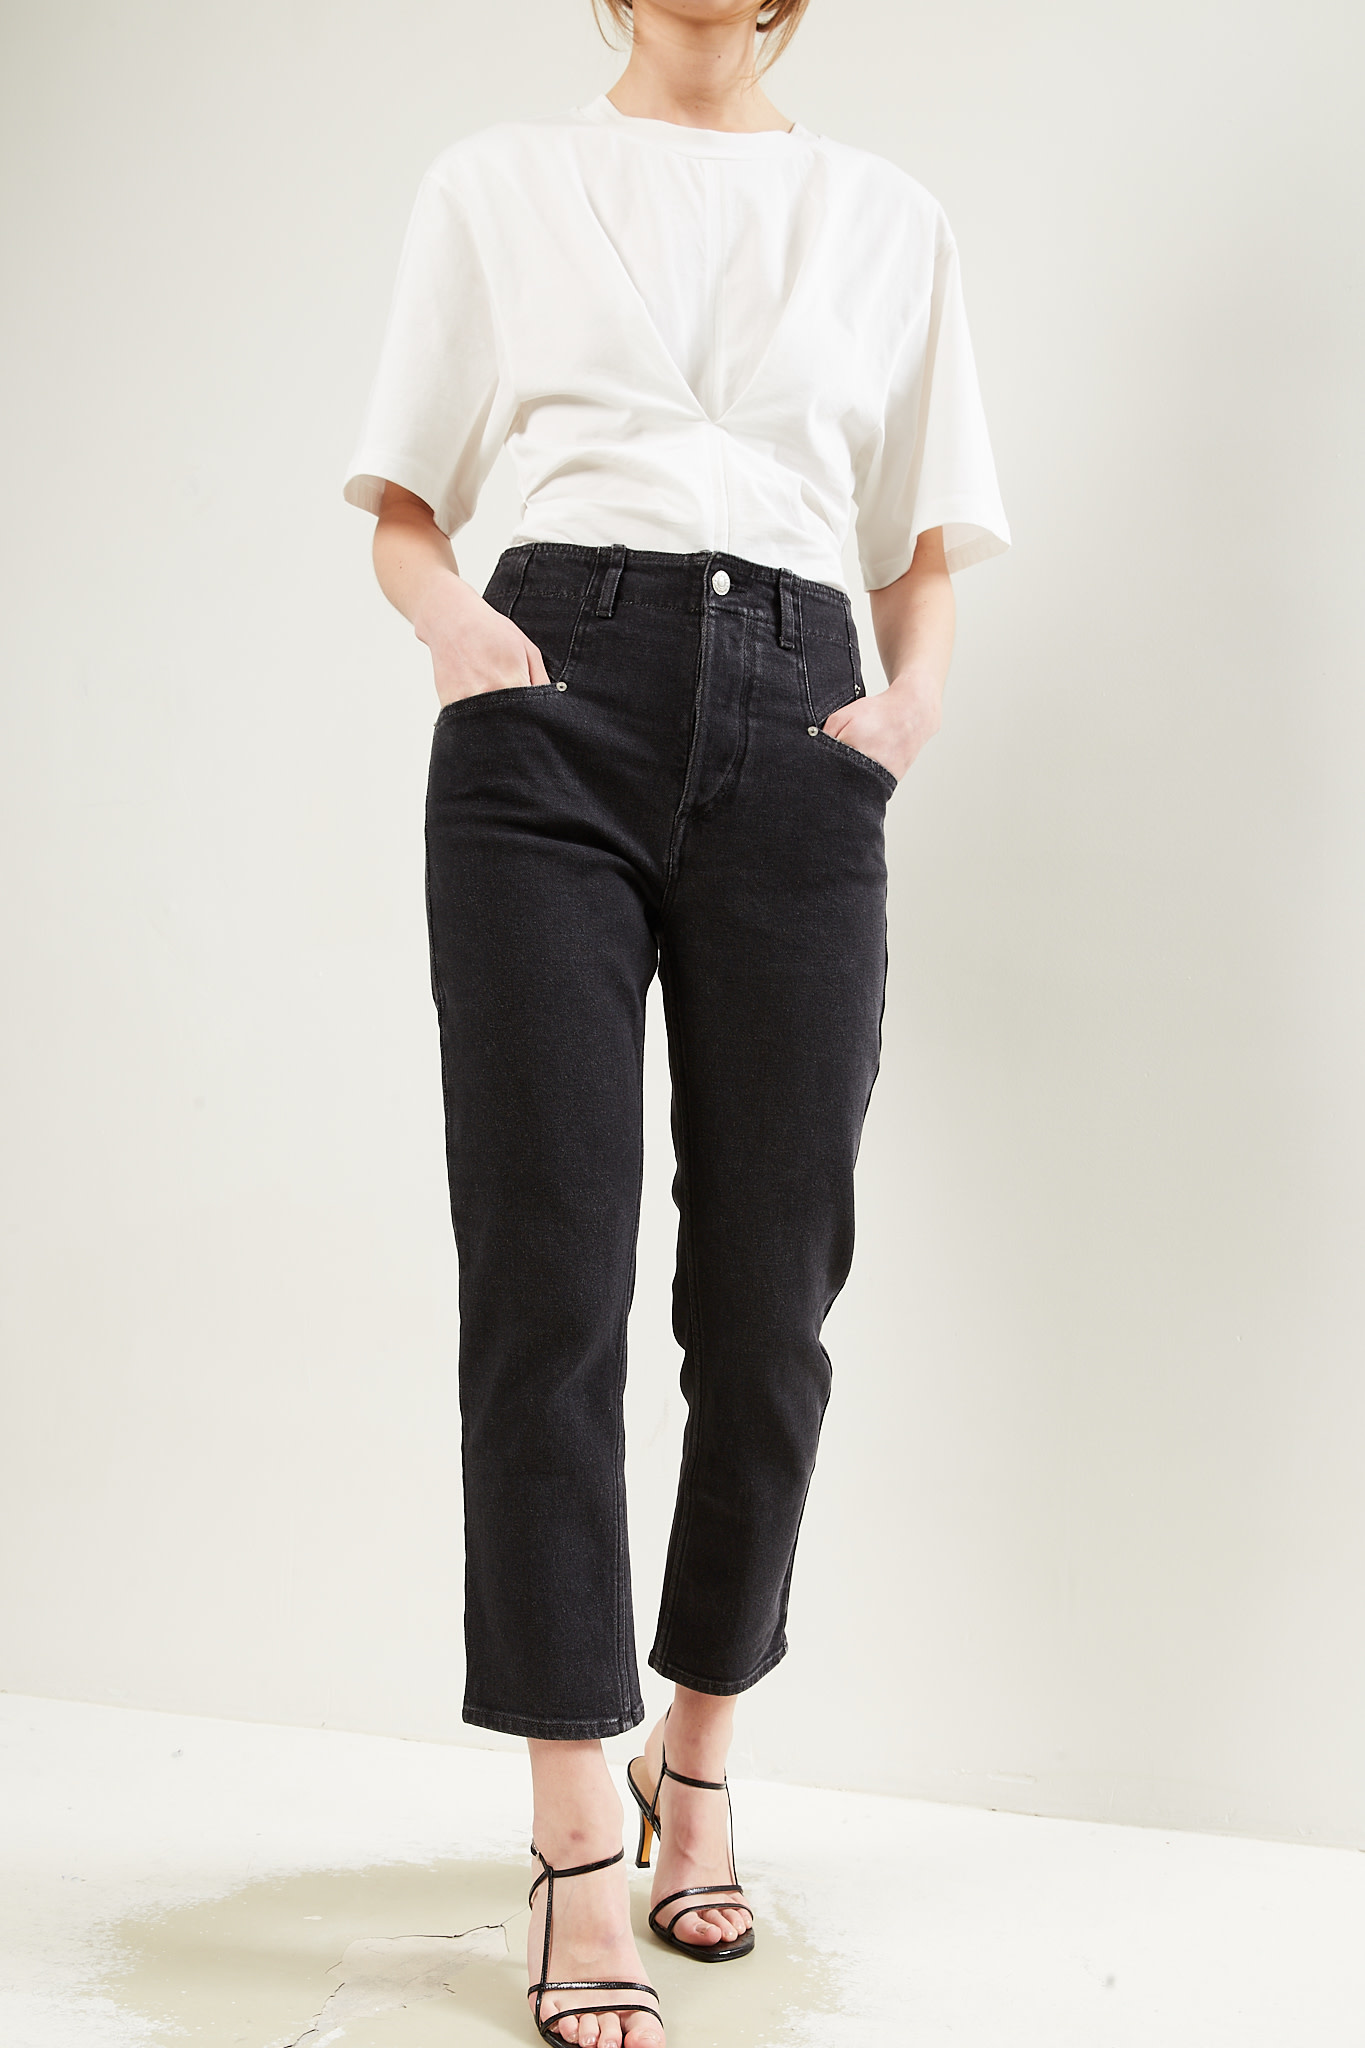 Isabel Marant Dilianesr stretch denim pants